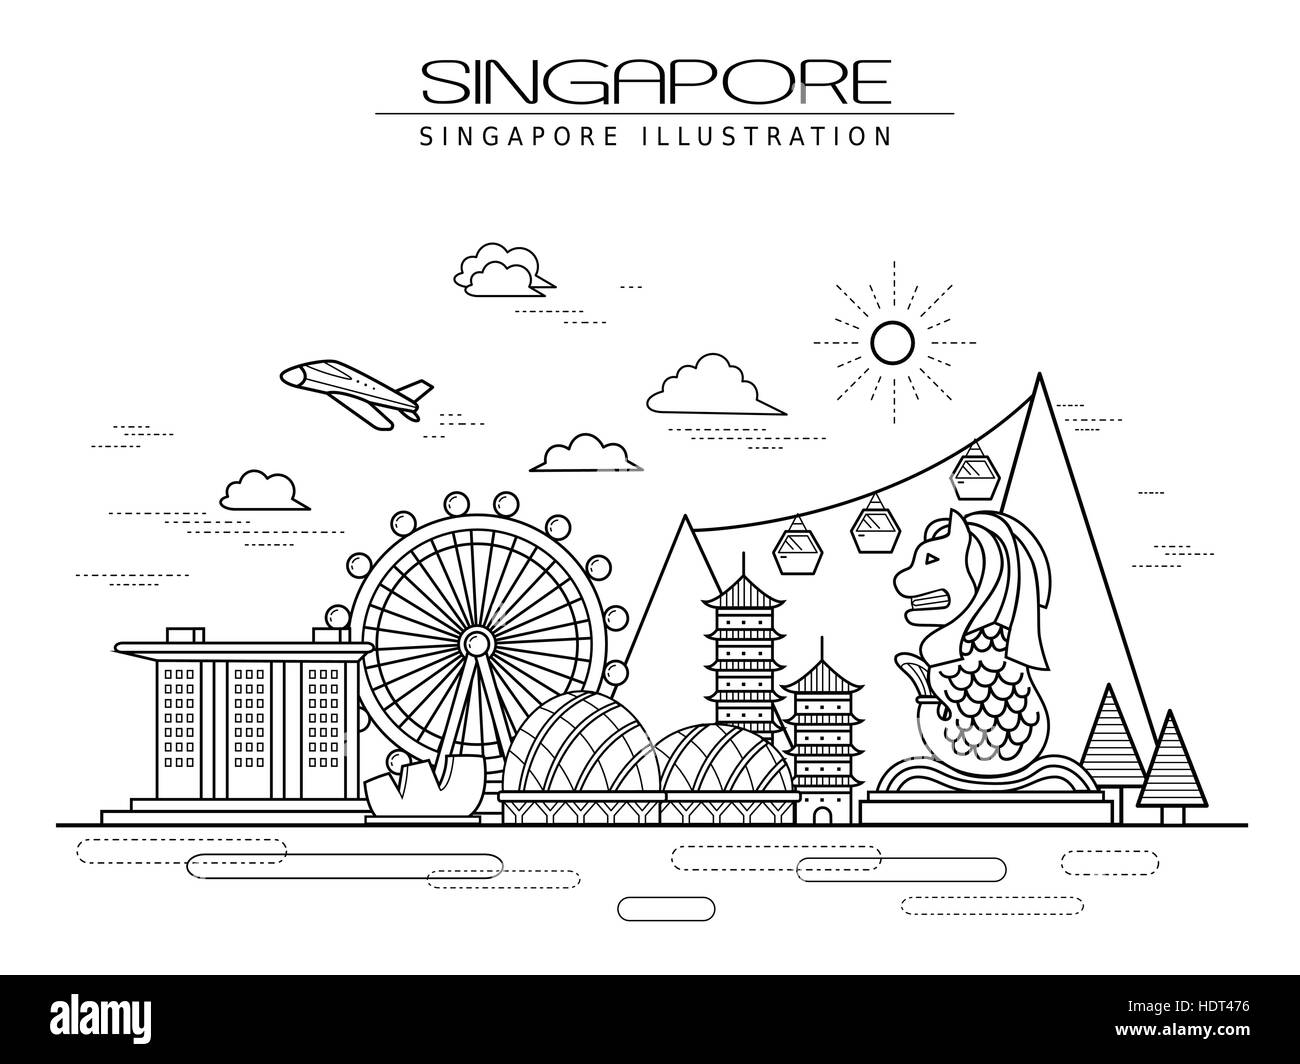 Poster design drawing - Stock Vector Simplicity Singapore Scenery Poster Design In Line Style